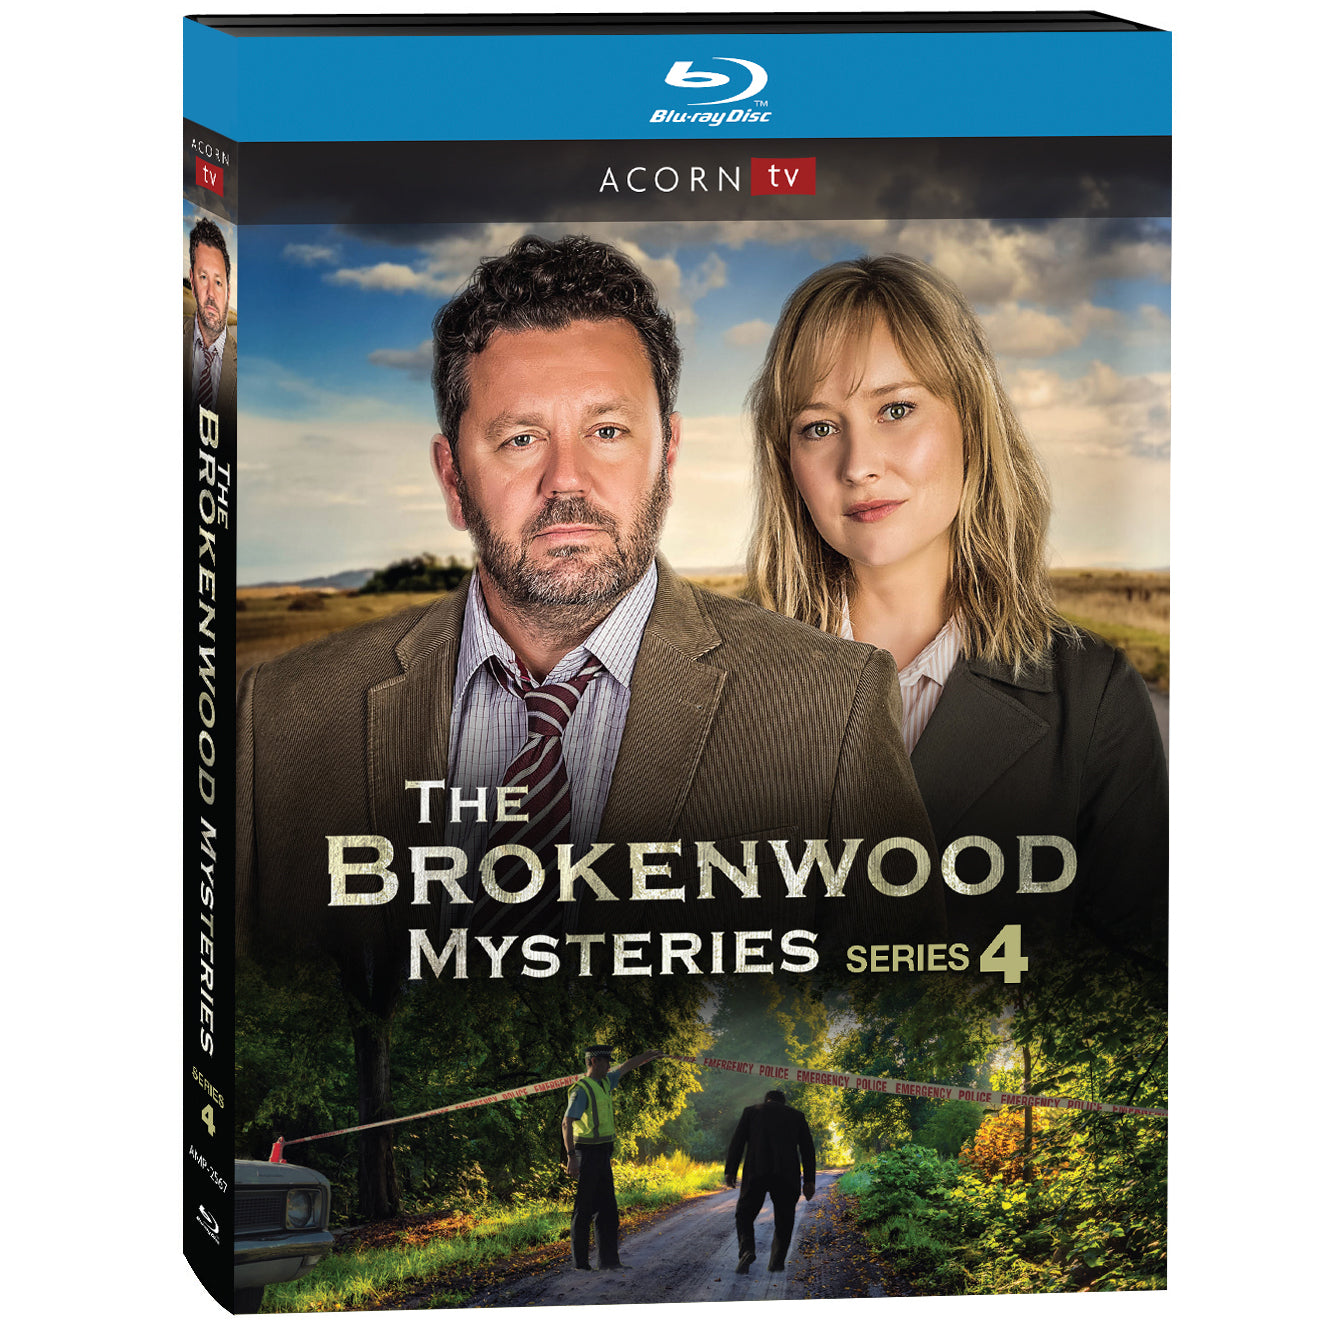 The Brokenwood Mysteries: Series 4 (Blu-ray)